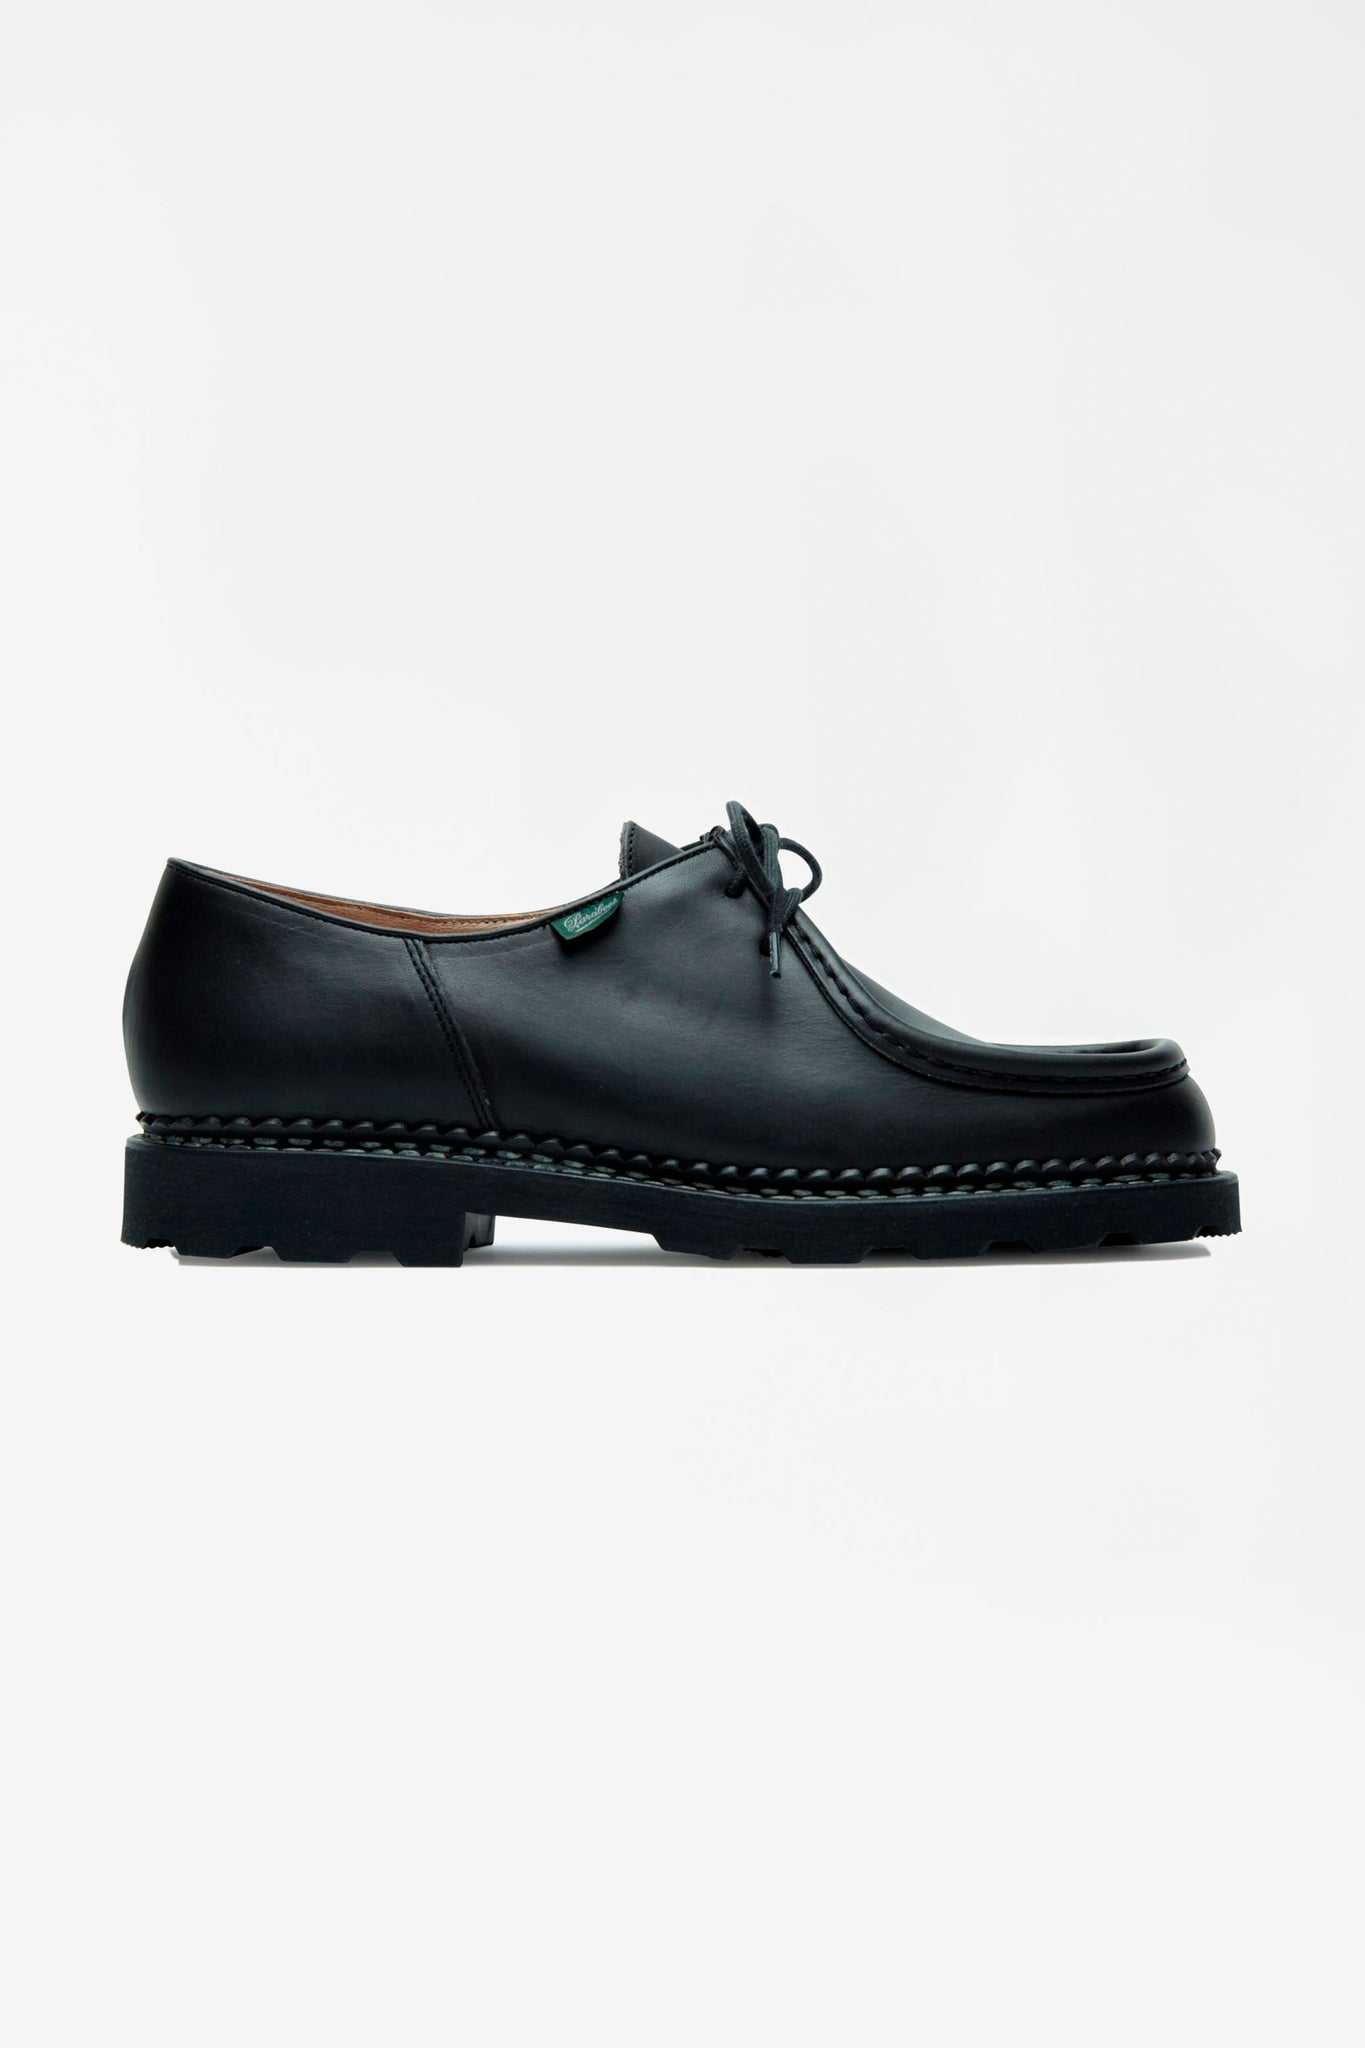 Michael shoes marche II noire-lis noire